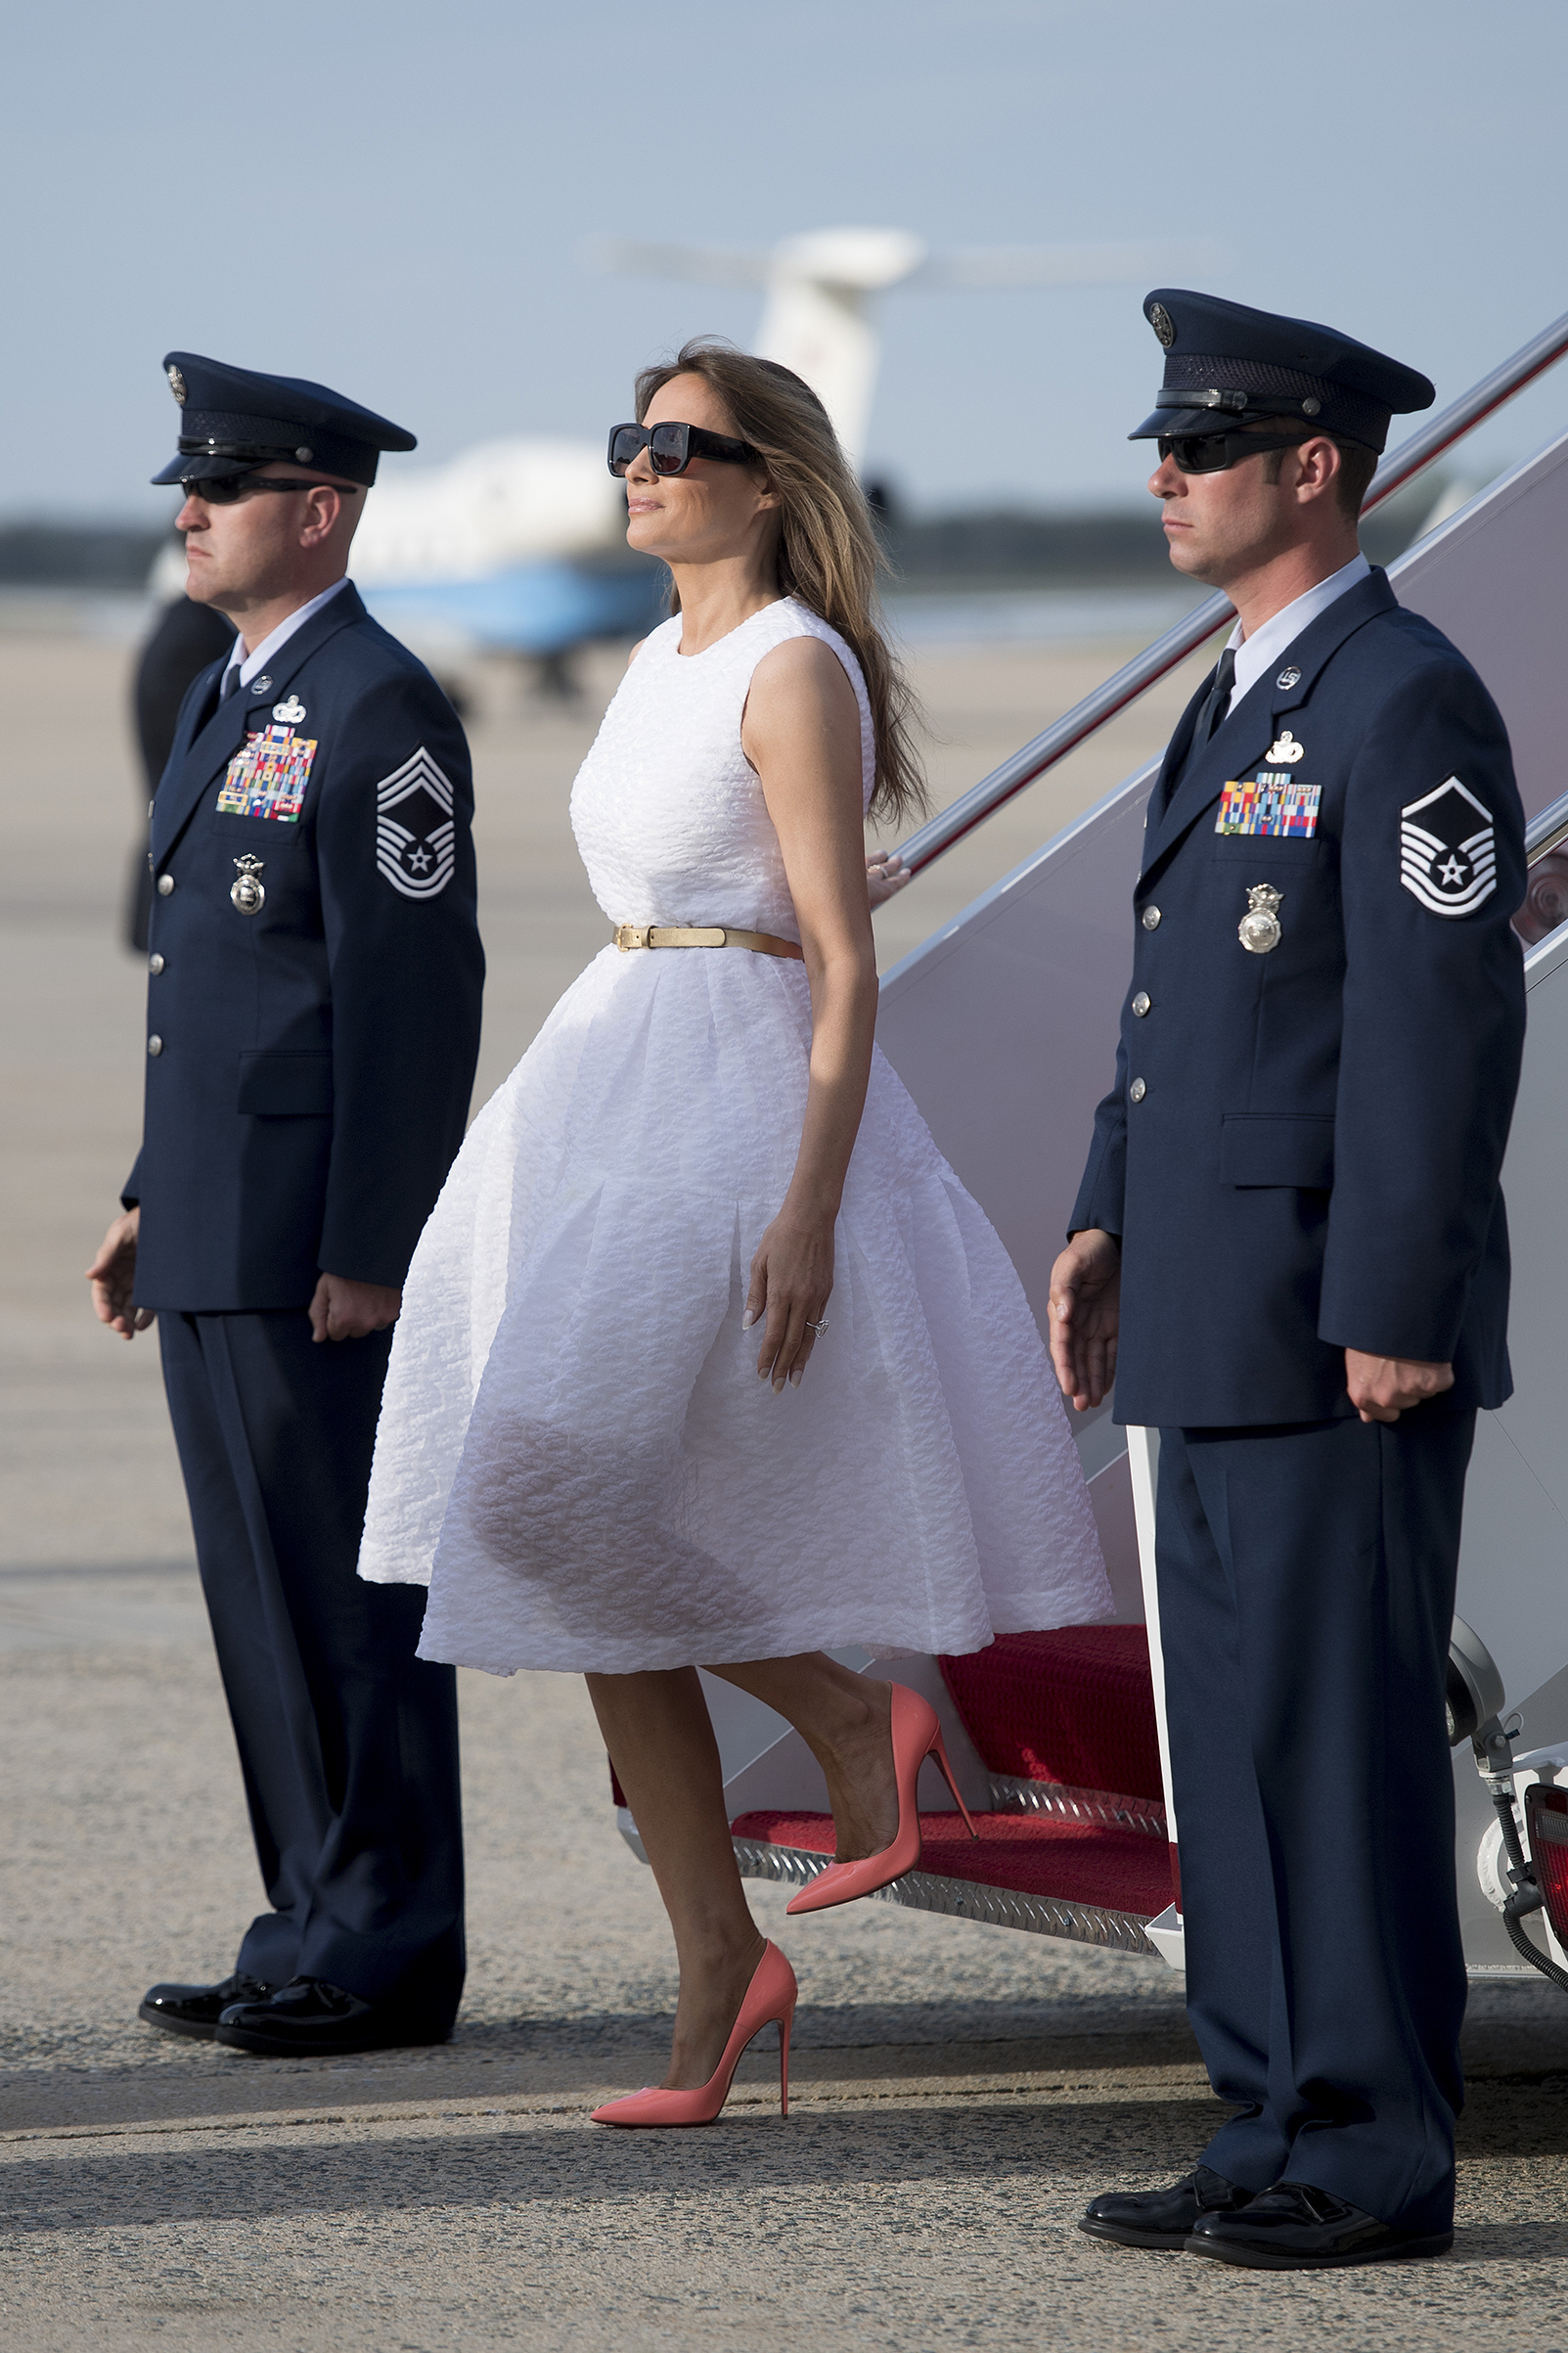 First lady Melania Trump wearing Simone Rocha dress and Christian Louboutin shoes, walks off Air Force One at Andrews Air Force Base, Md., April 16, 2017.